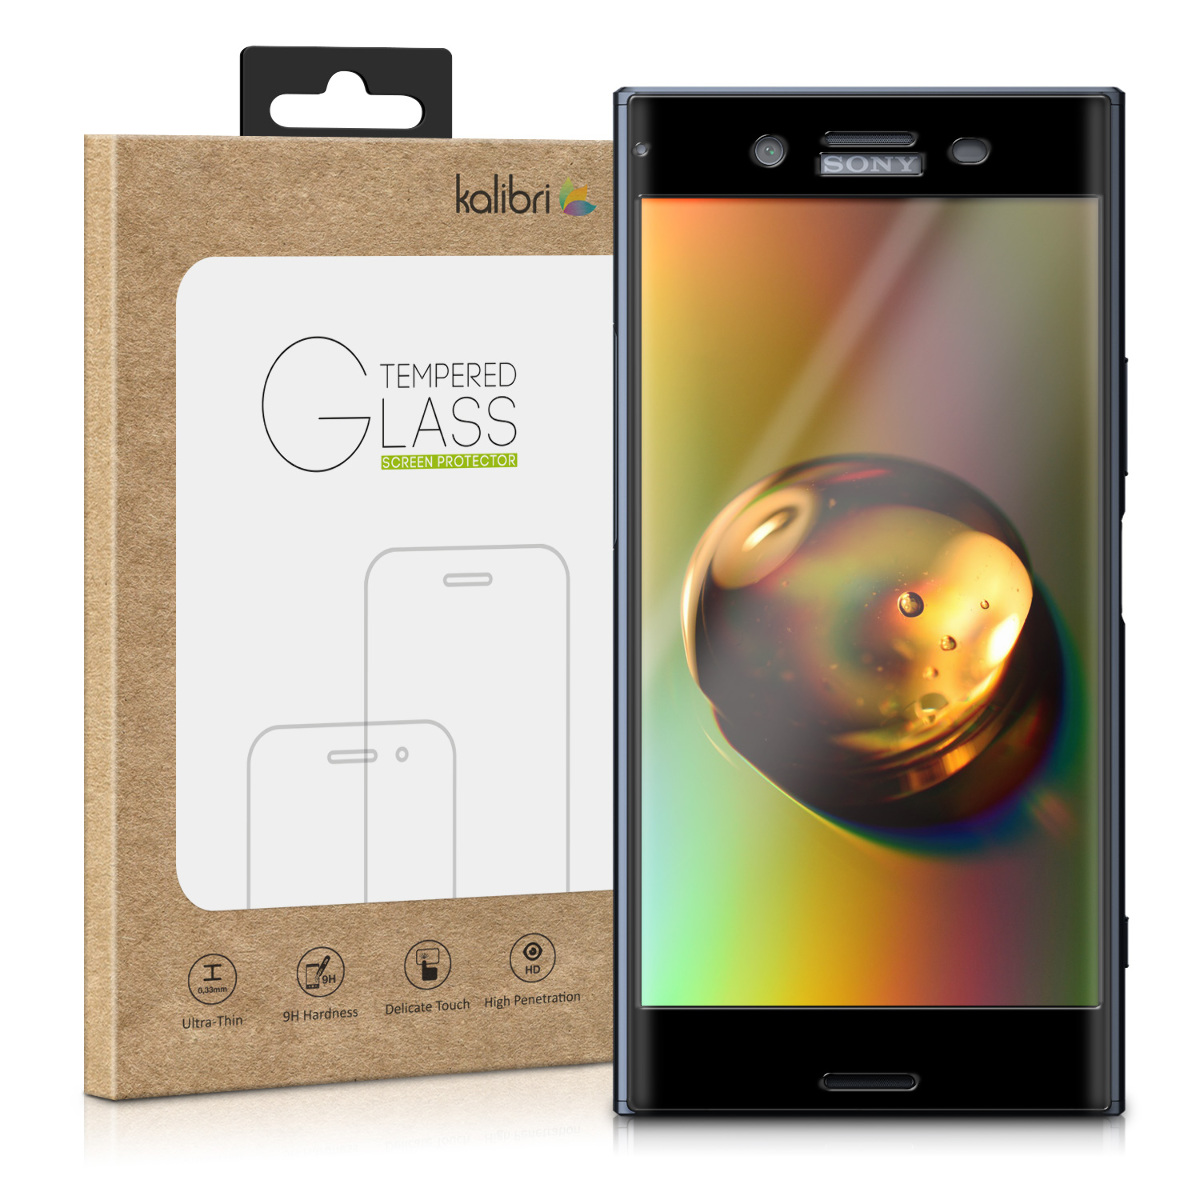 Kalibri Tempered Glass - Fullface Αντιχαρακτικό Γυαλί Οθόνης Sony Xperia XZ Premium (46619.1)